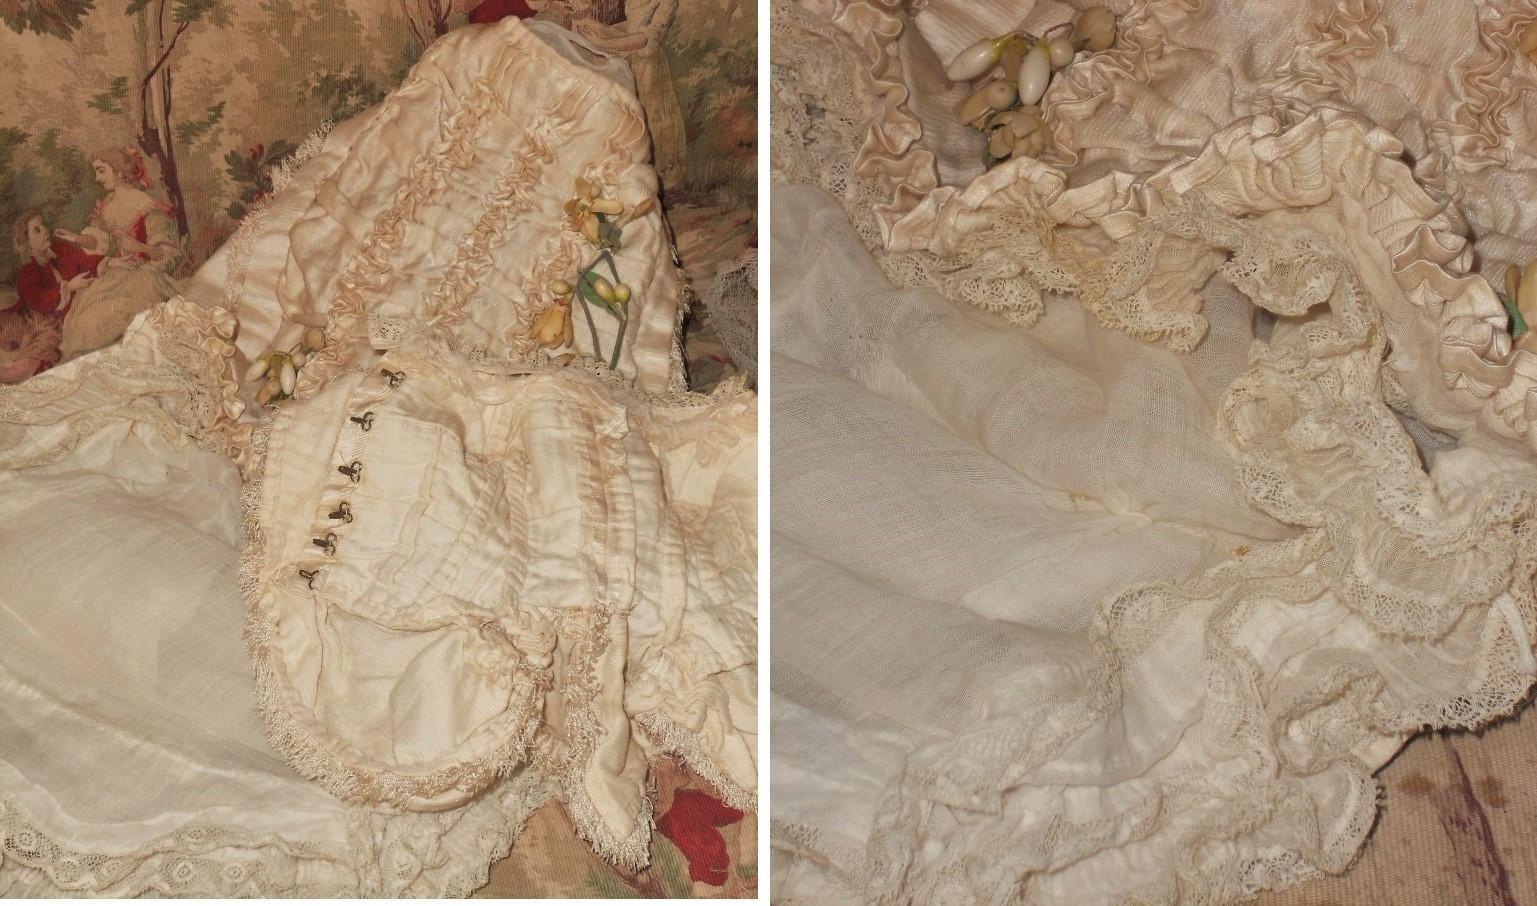 ~~~ Gorgeous Antique French Poupee Wedding Gown in Box ~~~ from whendreamscometrue on Ruby Lane